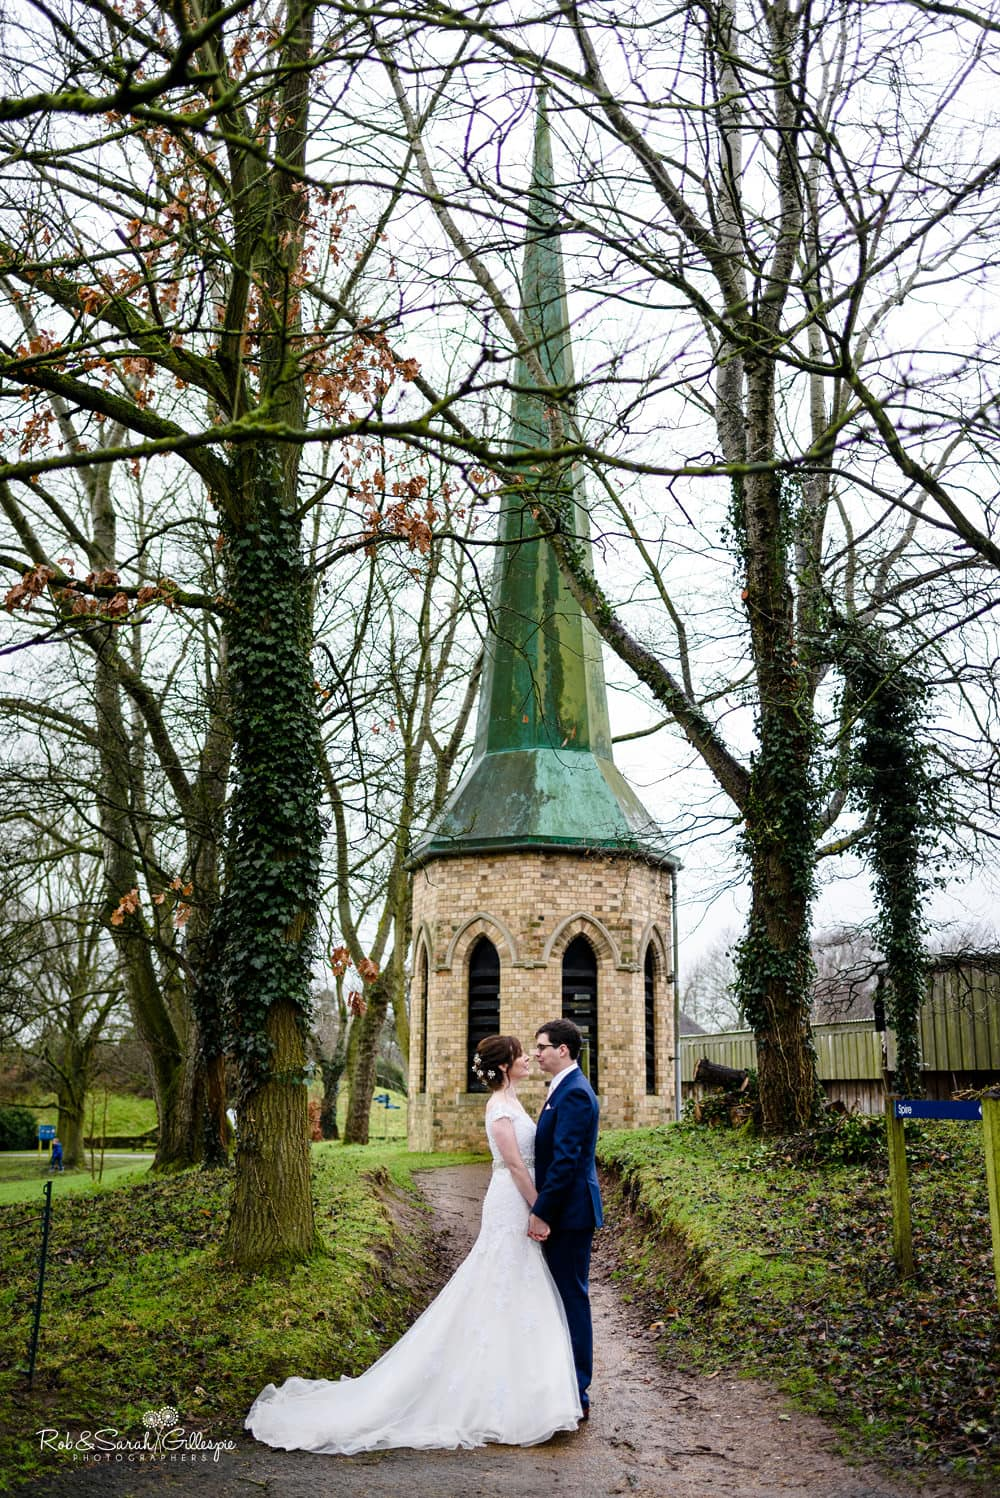 Bride and groom together at Avoncroft Museum